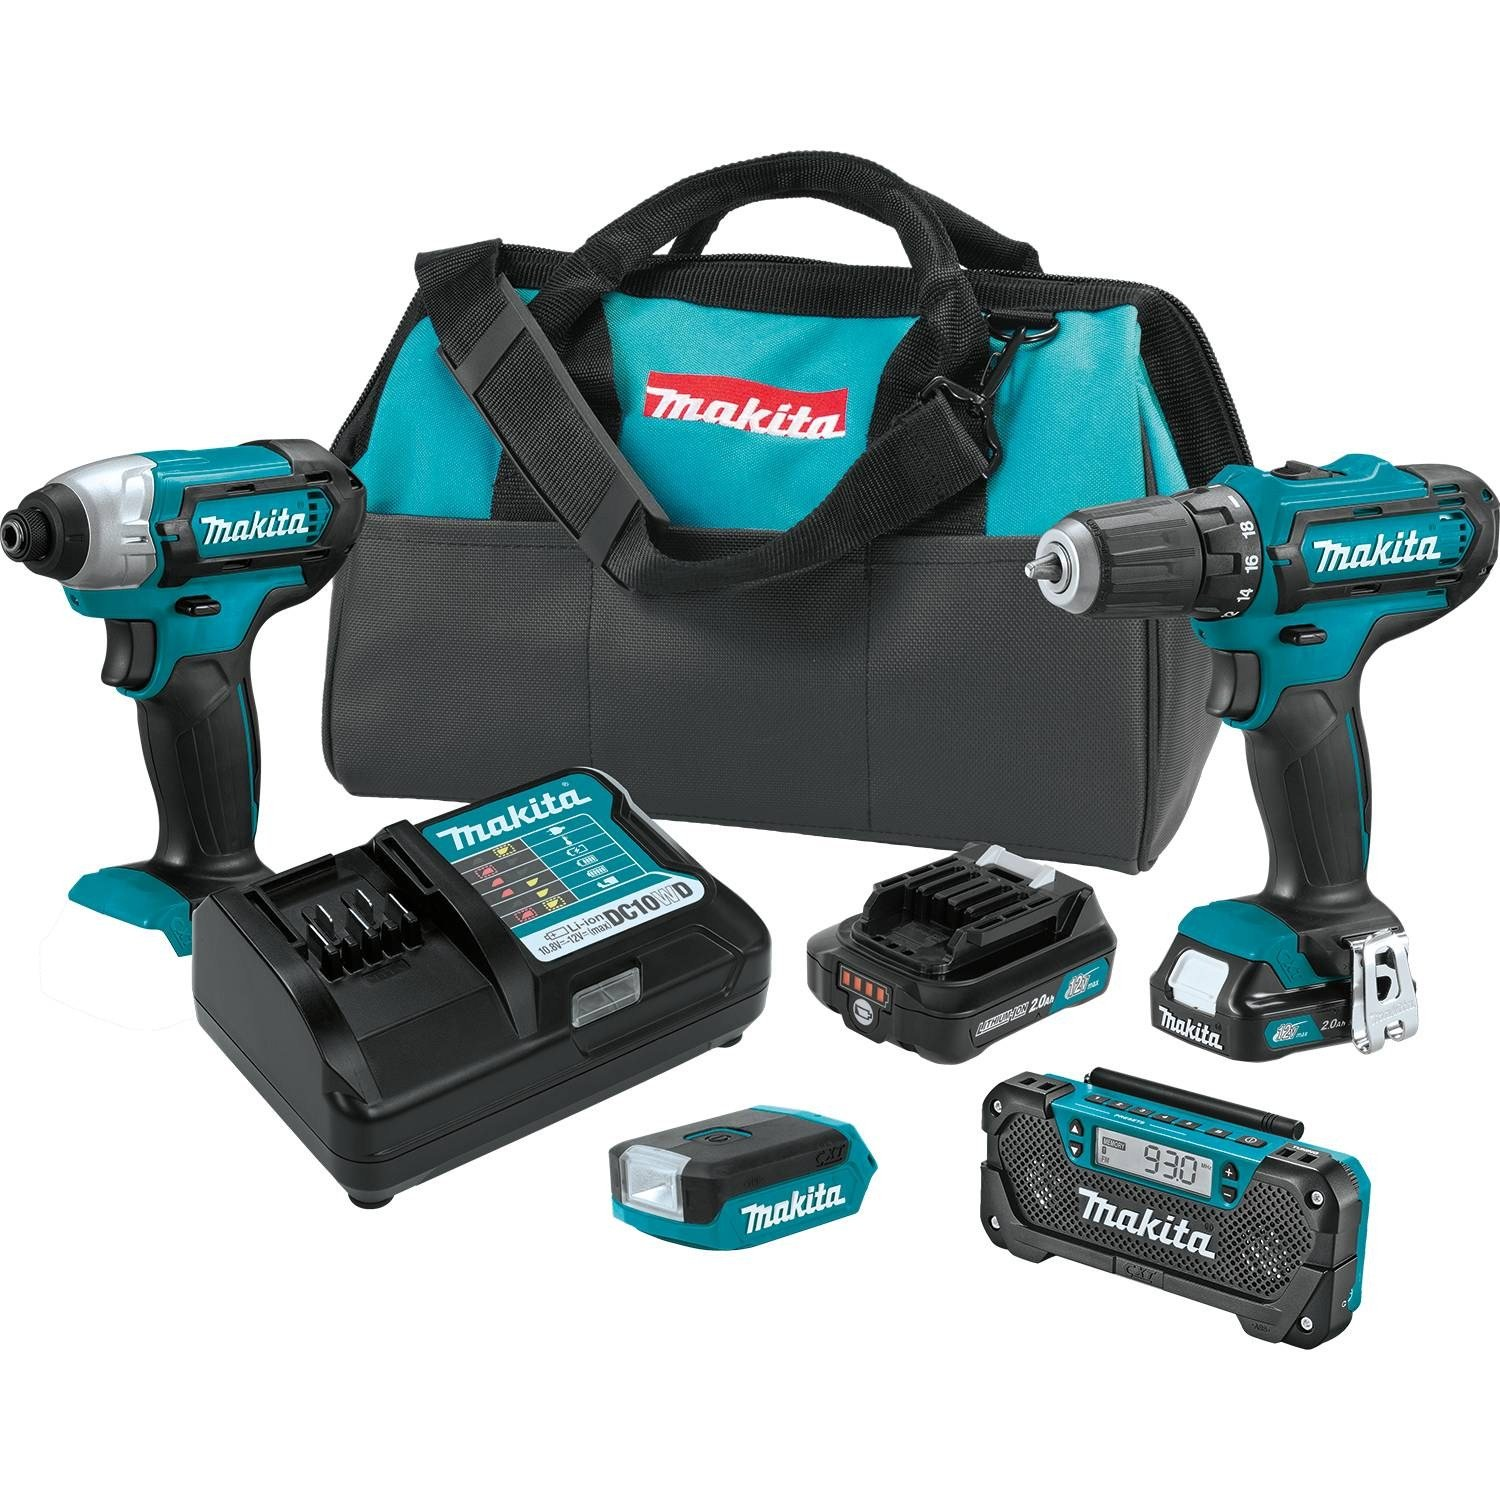 Buy Masione 20V 4 0AMP for Craftsman 26302 Cordless Drill